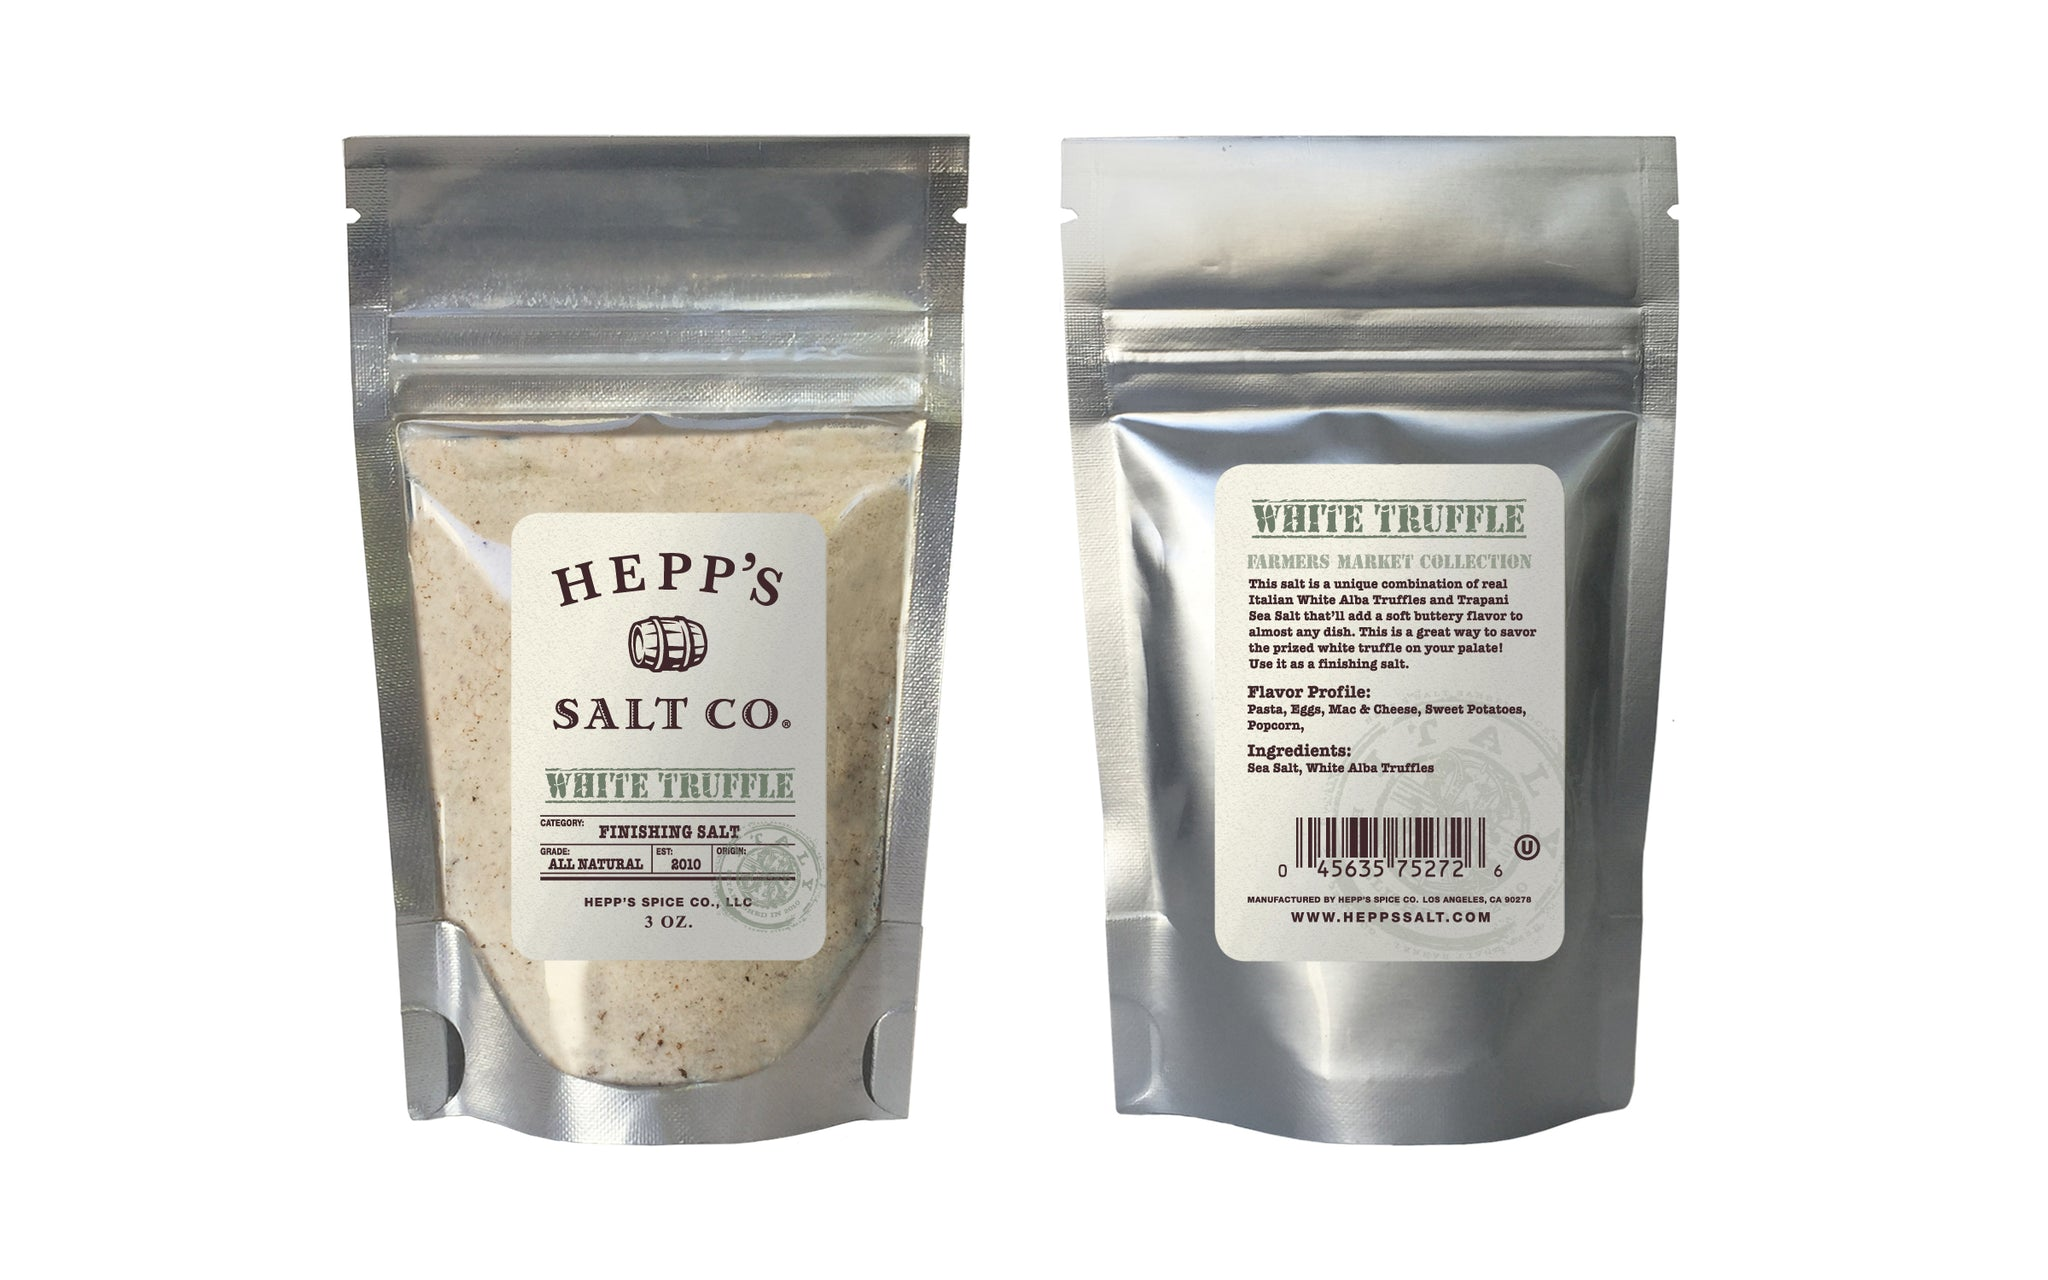 White Truffle Sea Salt 3 oz Pouch - HEPPS SALT CO.